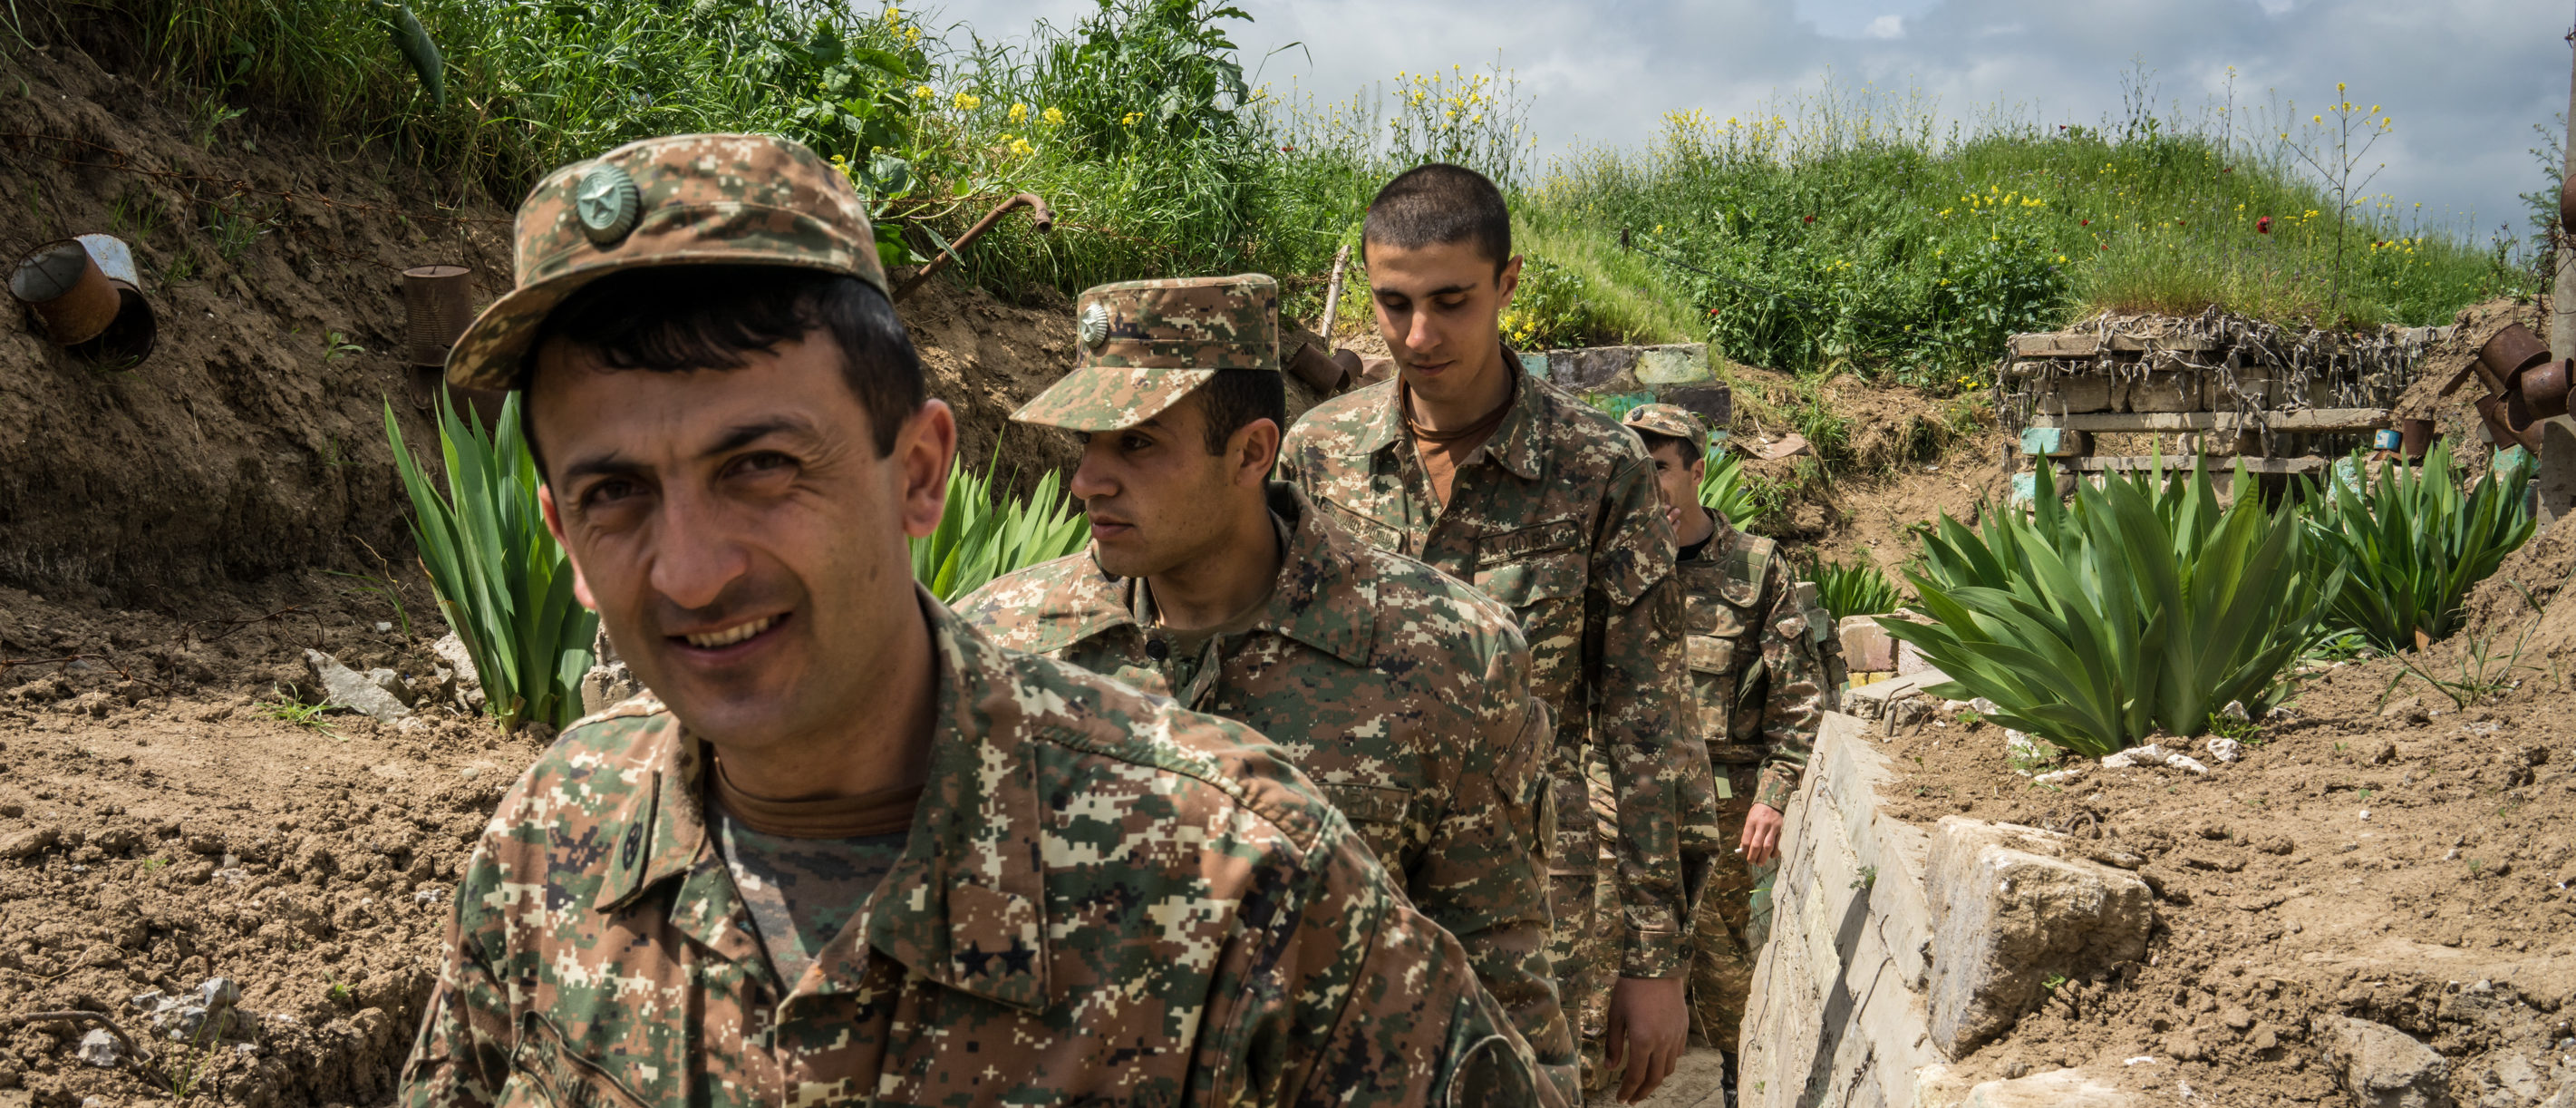 OPINION: Is There Hope For Lasting Peace In Nagorno-Karabakh?